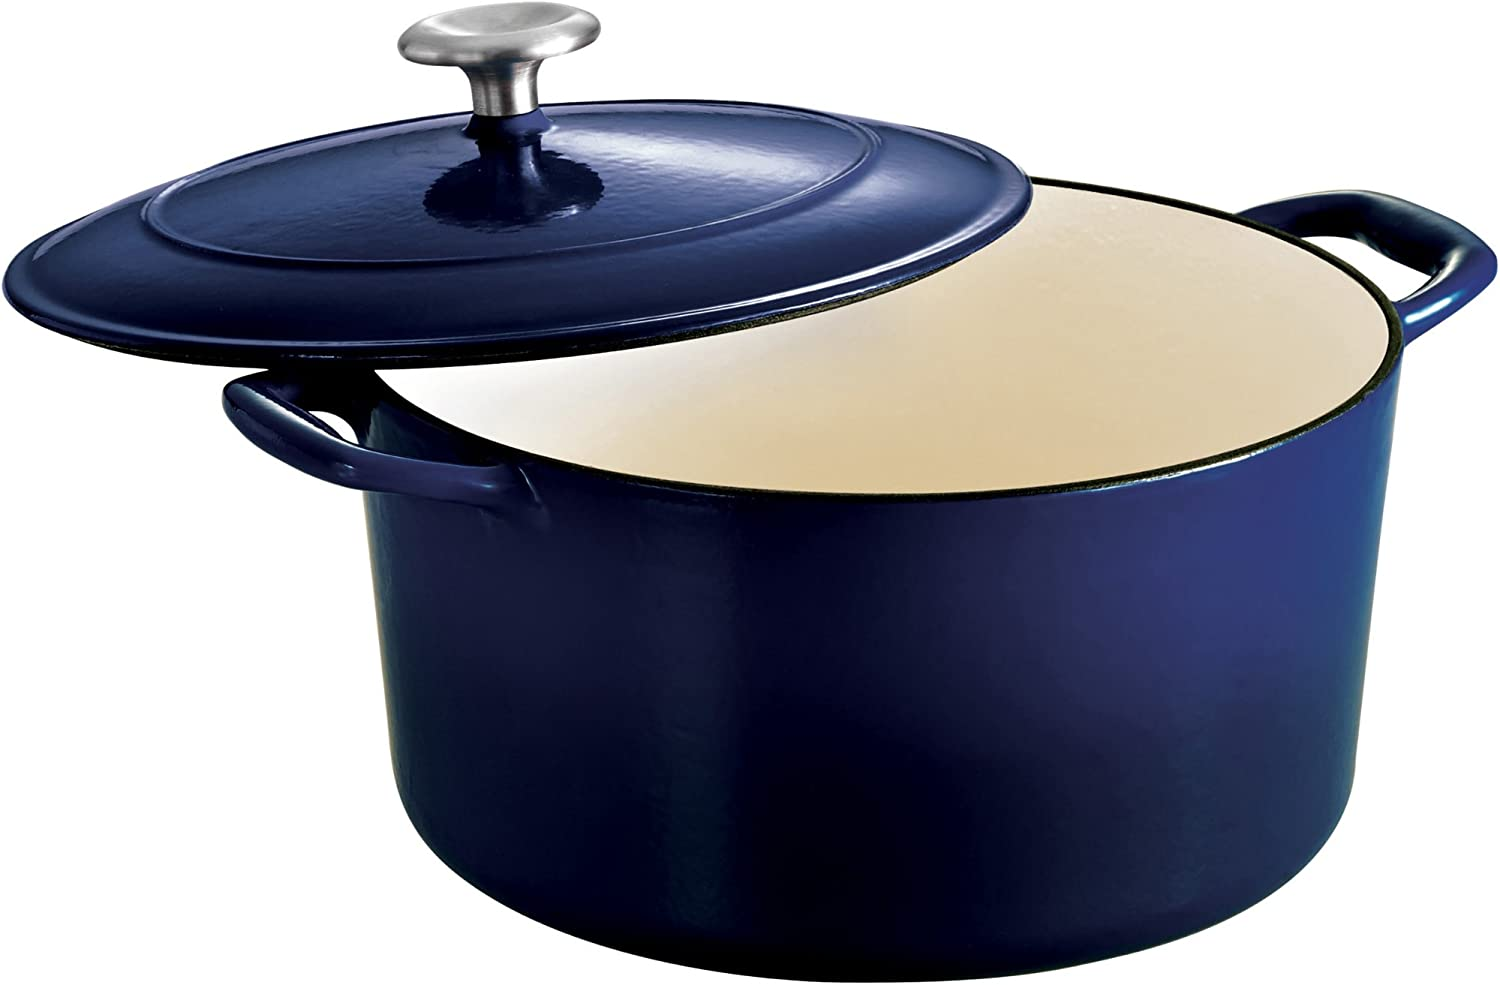 Tramontina Covered Round Dutch Oven 6.5-Quart Iron Max 80% OFF Enameled Super special price Cast